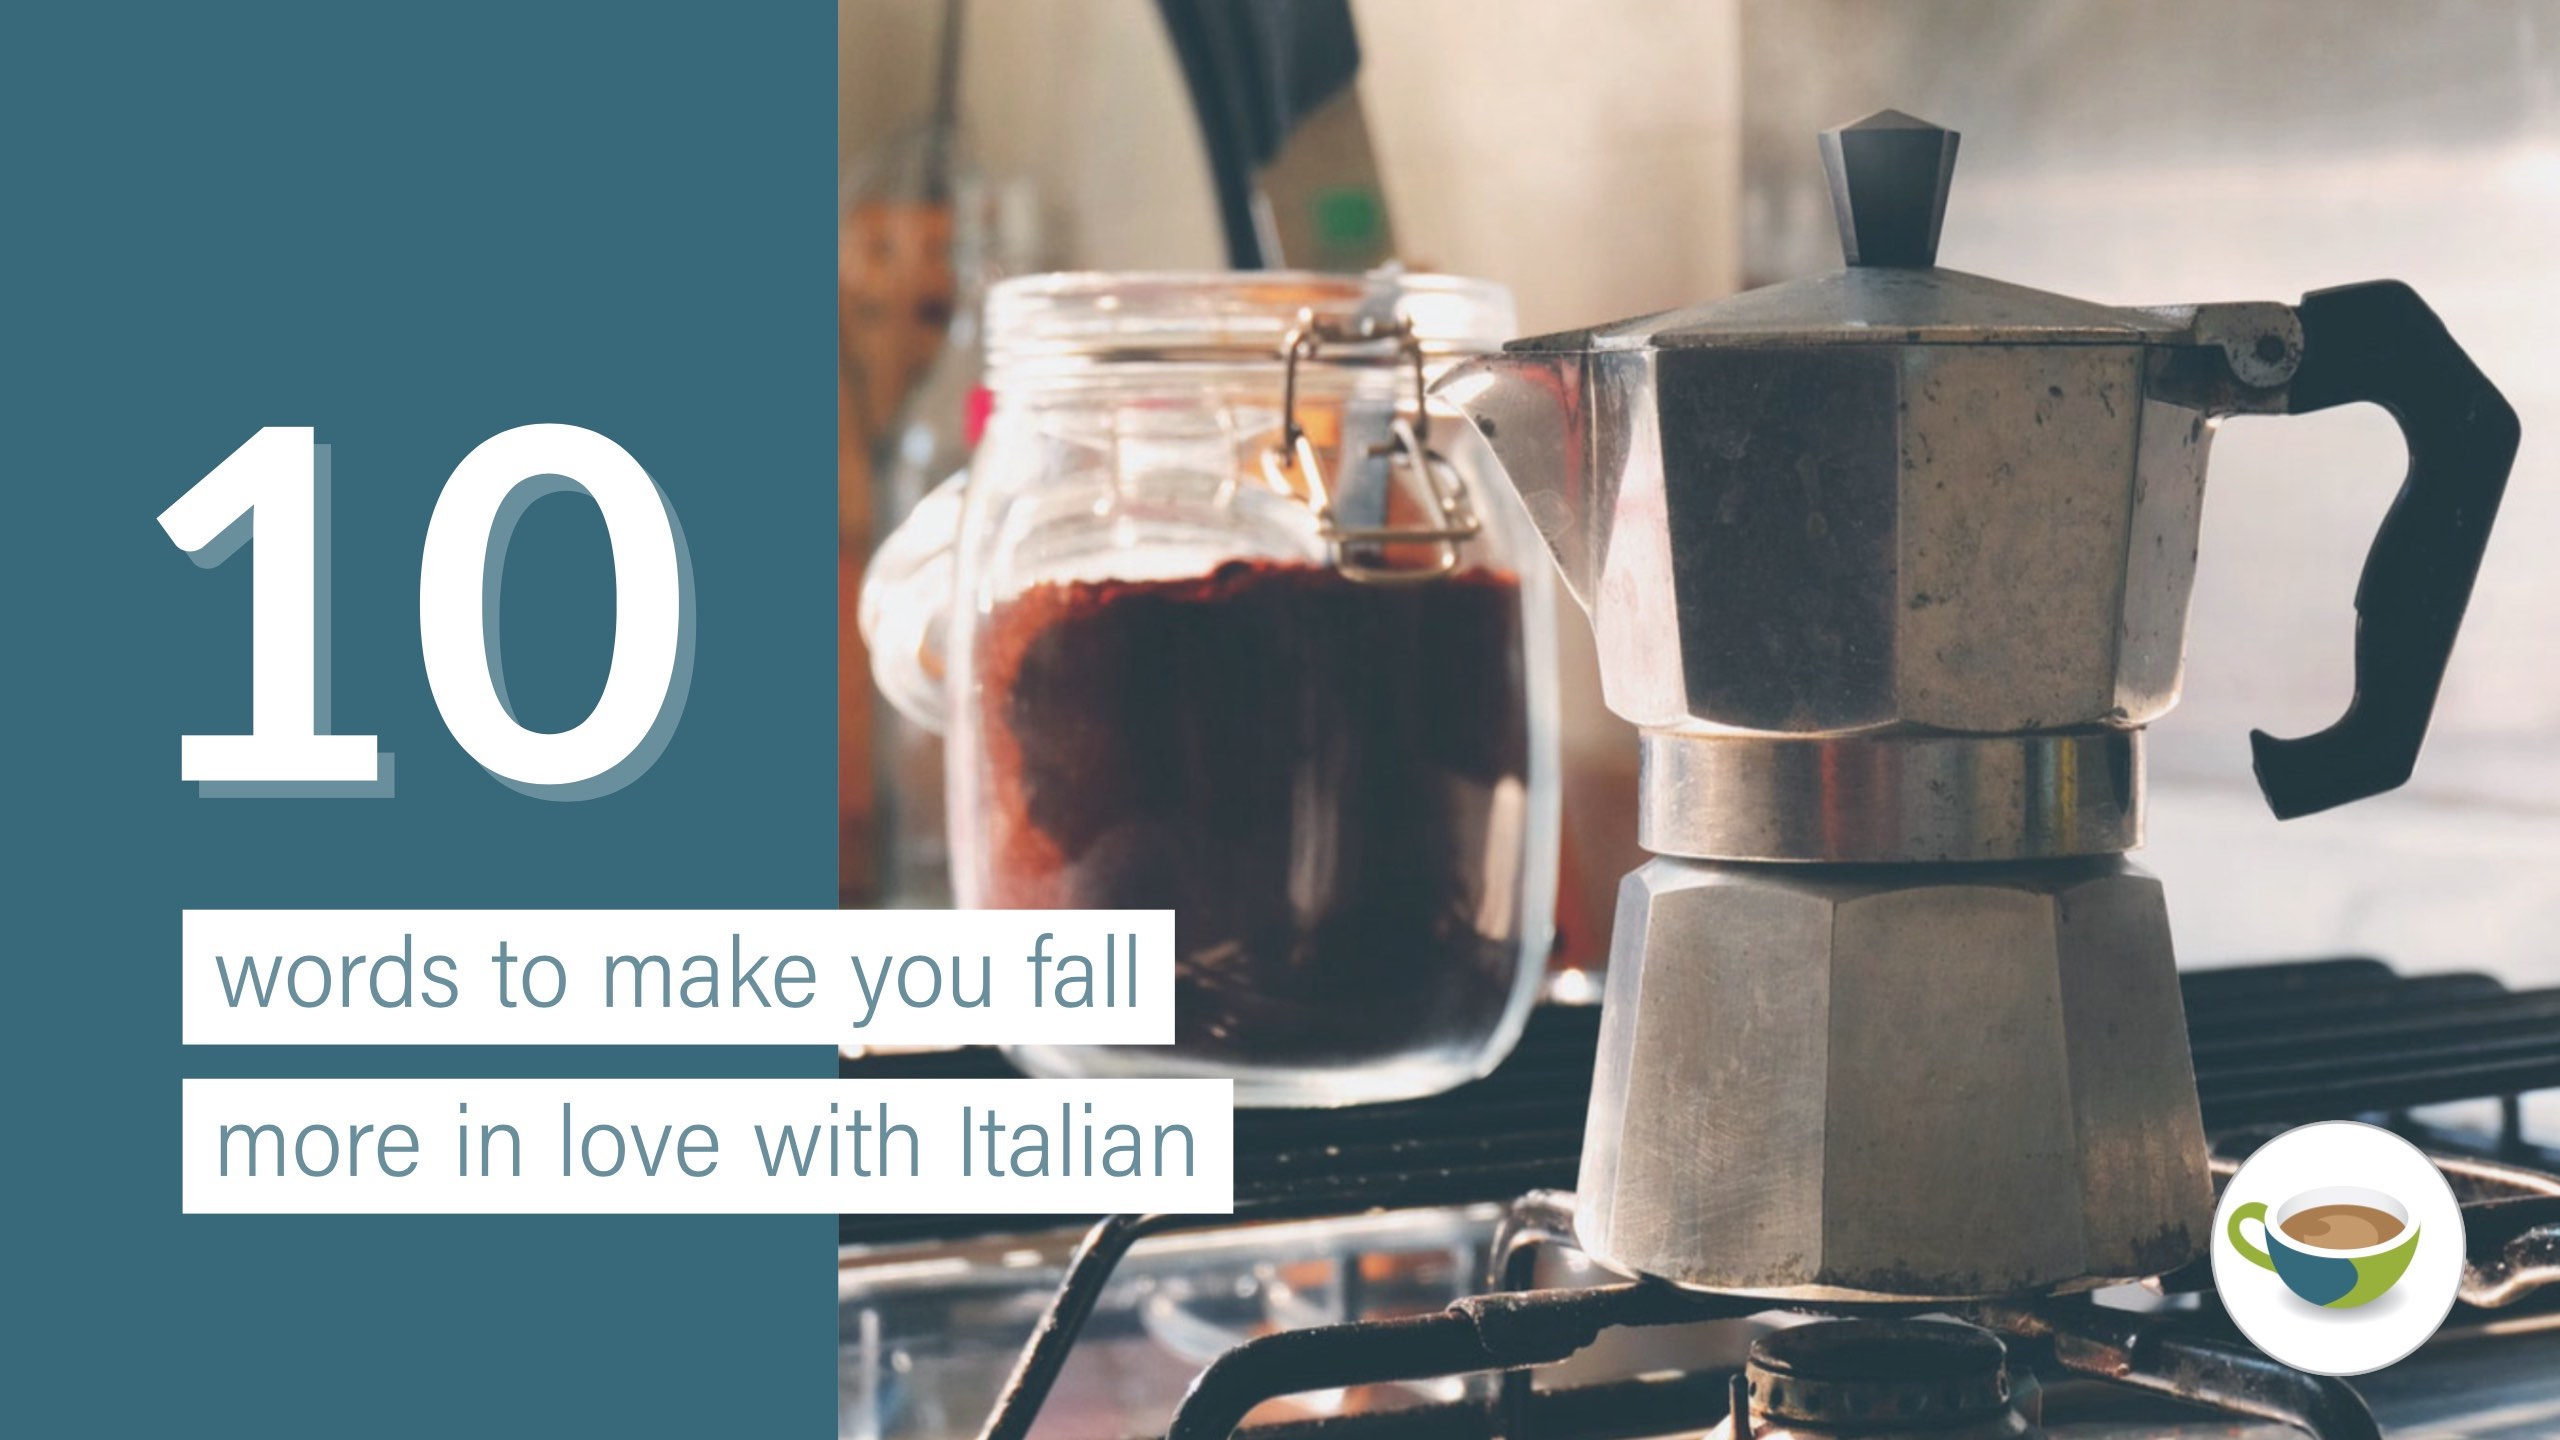 10 Italian words to make you fall more in love with Italian